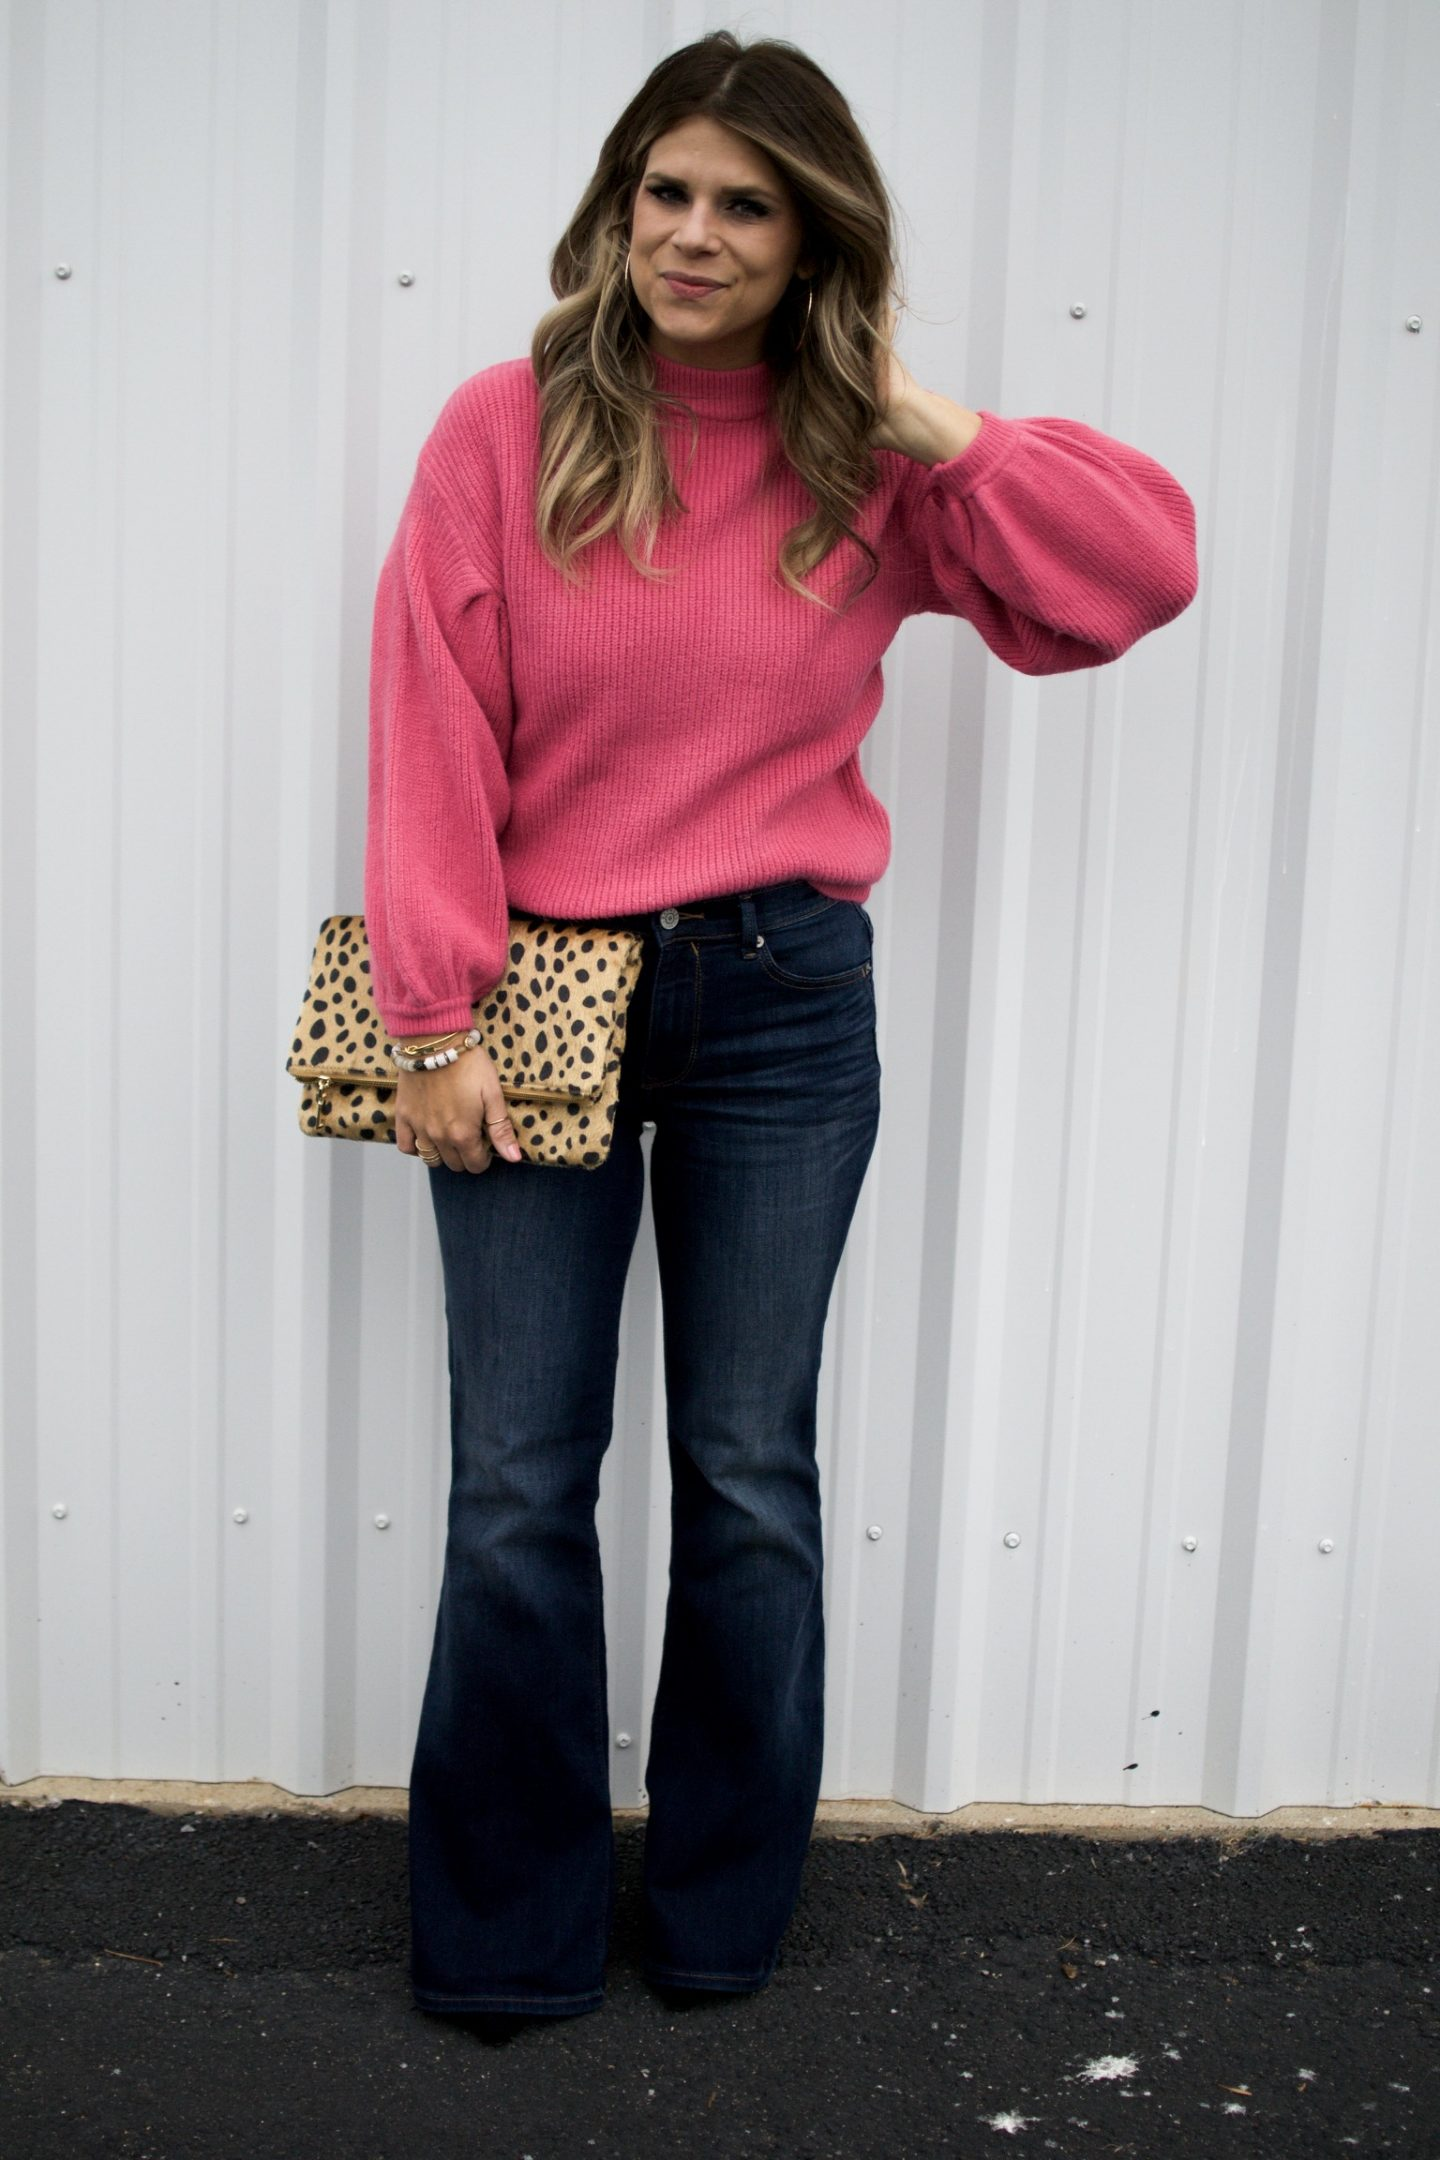 Pink Sweater, Flare Jeans, Leopard Clutch